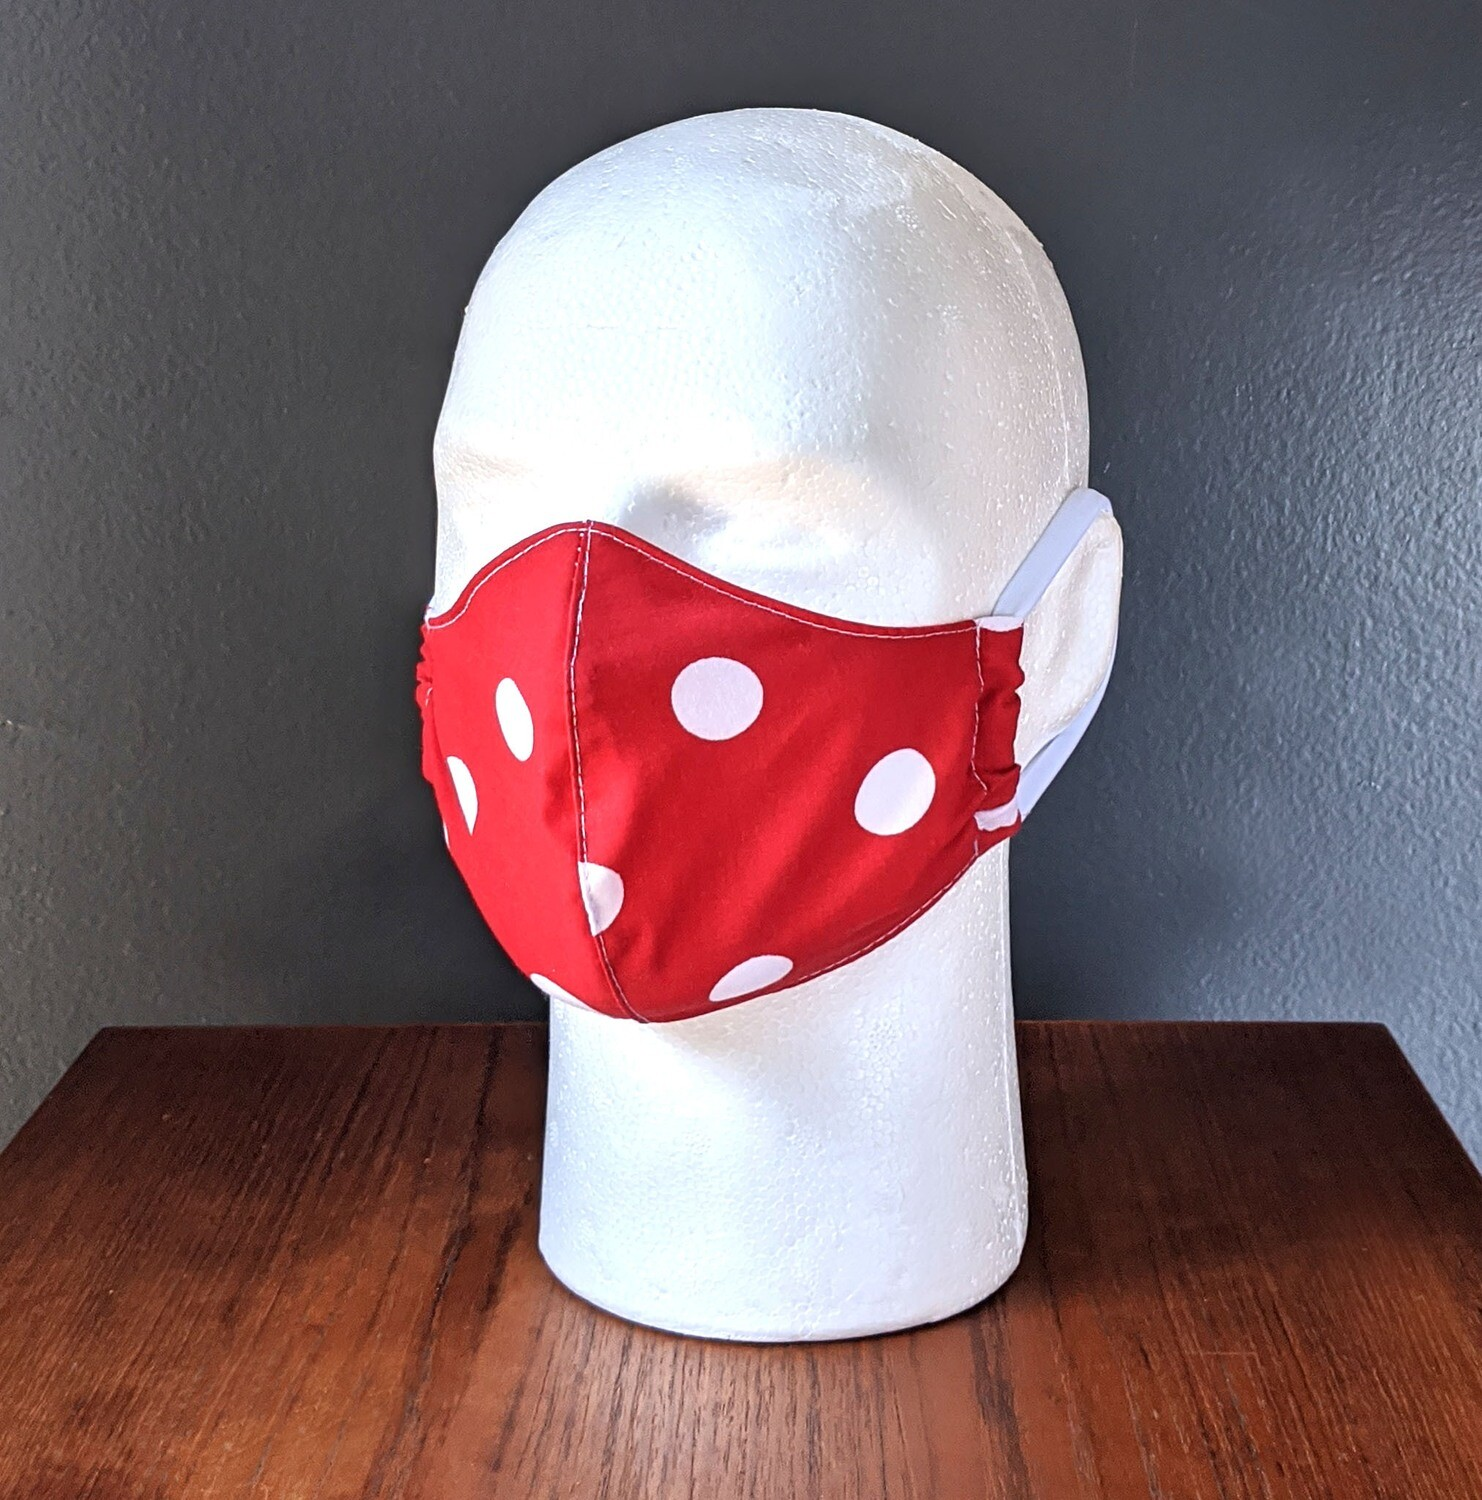 Red Polka Dot Face Masks, Cotton, Washable, Reusable, Double Layer for Smog, Pollen, Dust, Smoke. Made in USA